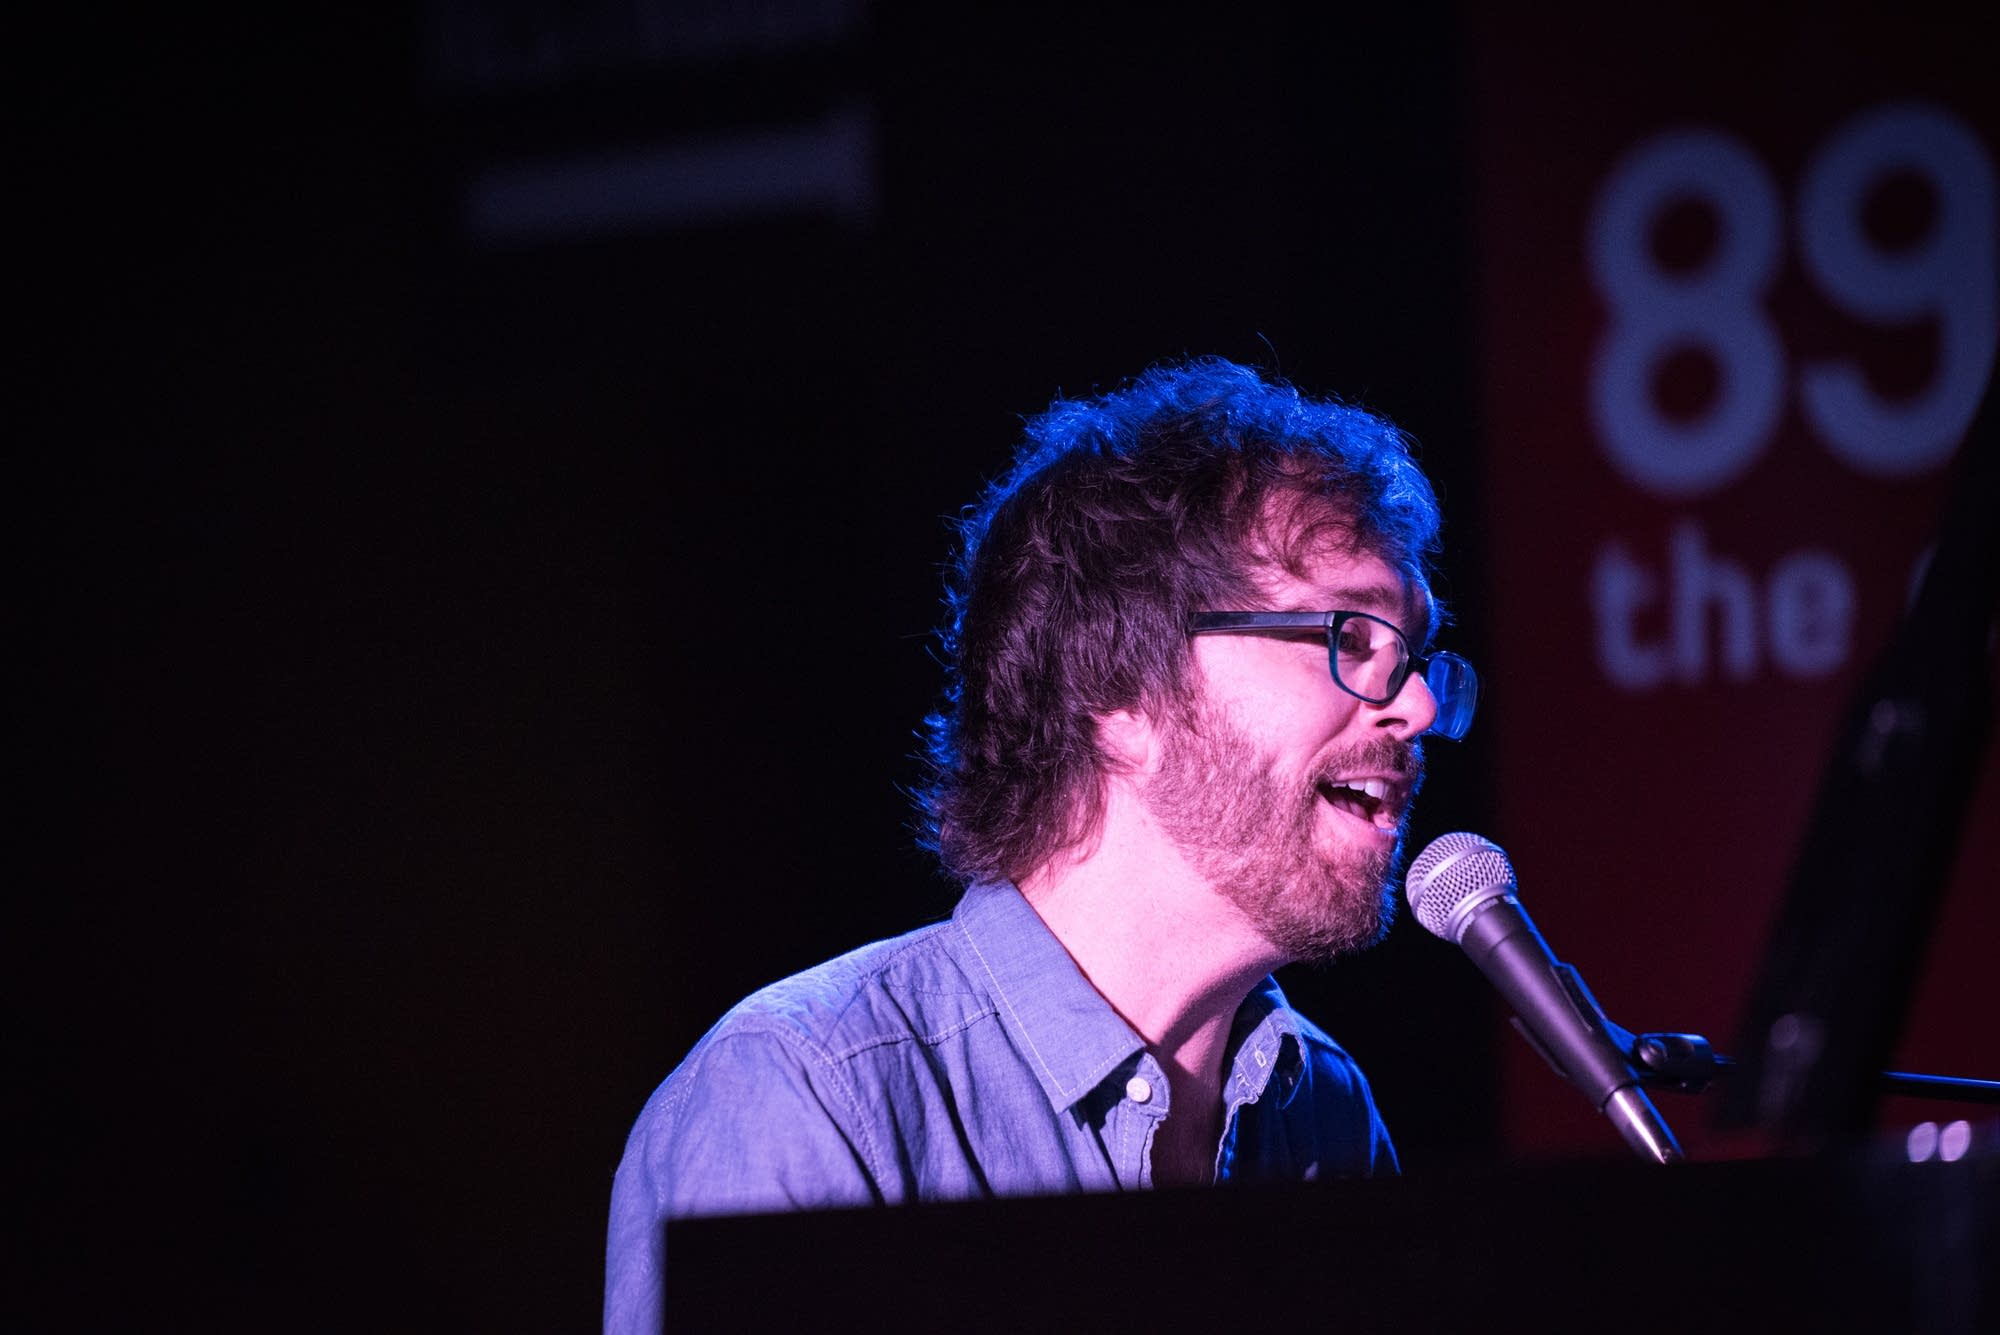 Ben Folds at the Turf Club - 8